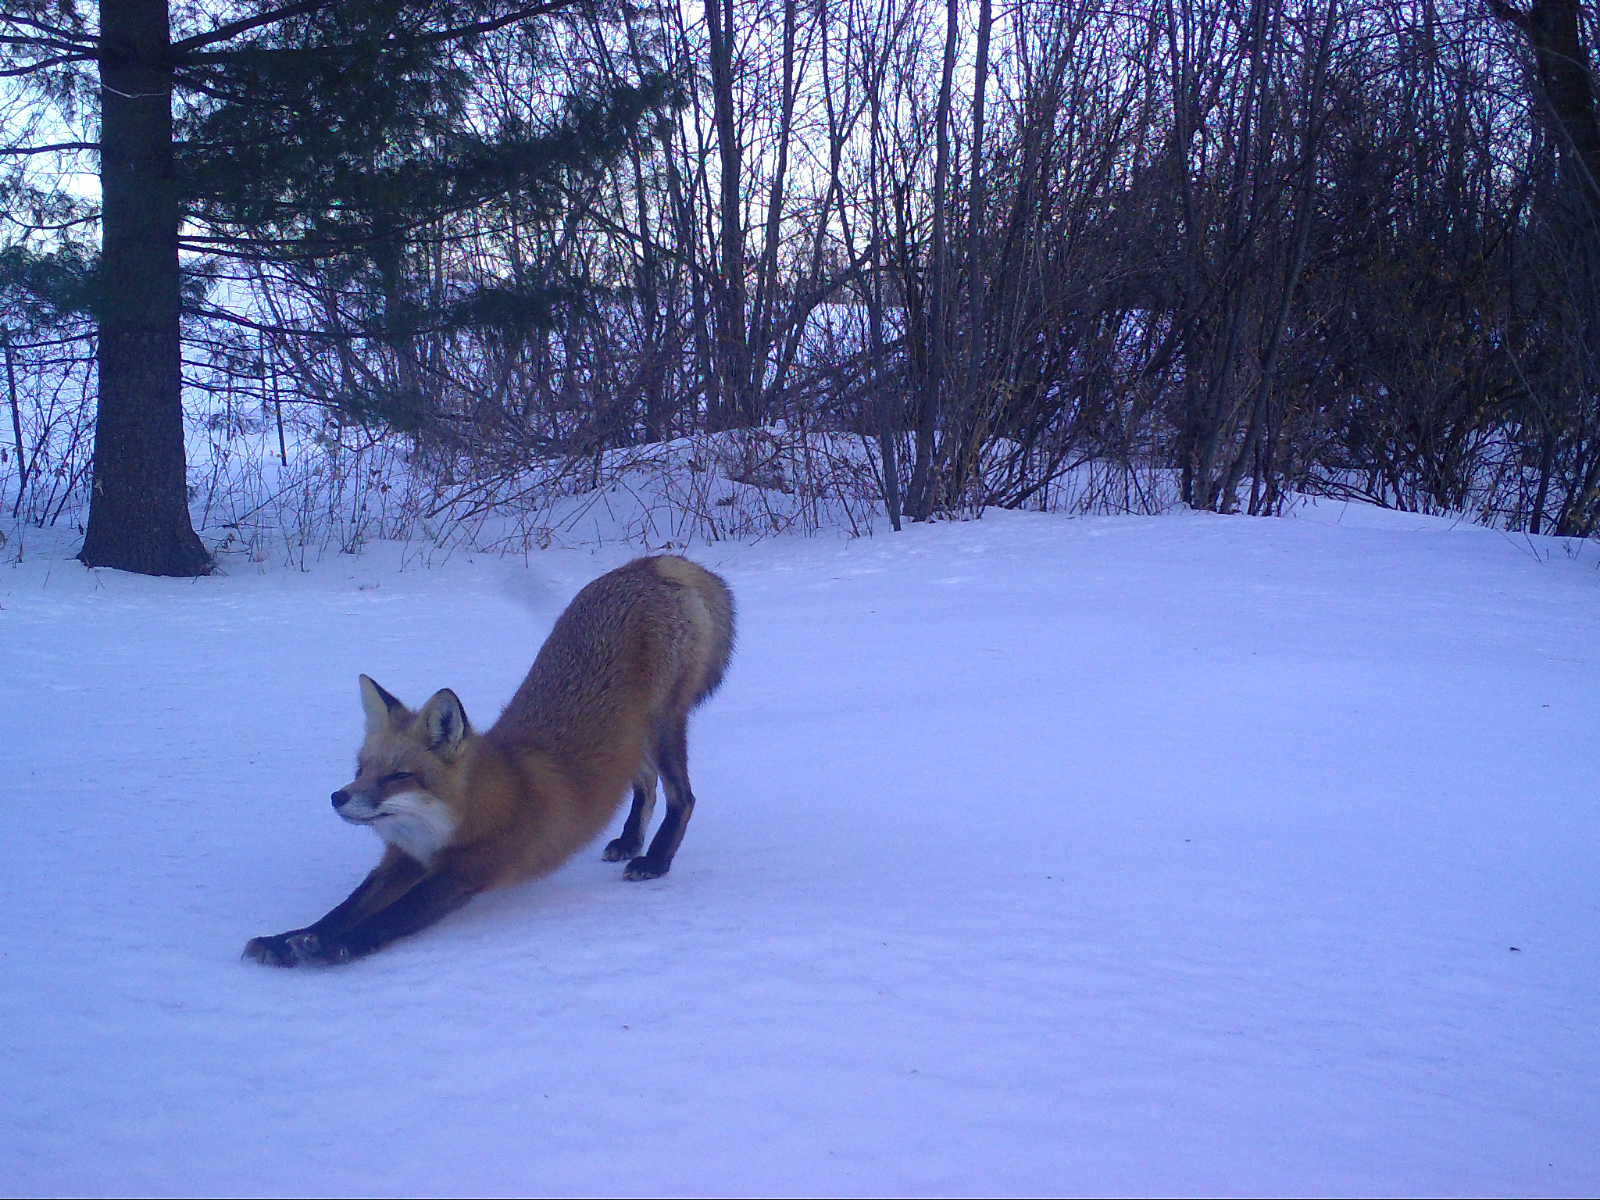 A red fox stretching in the snow